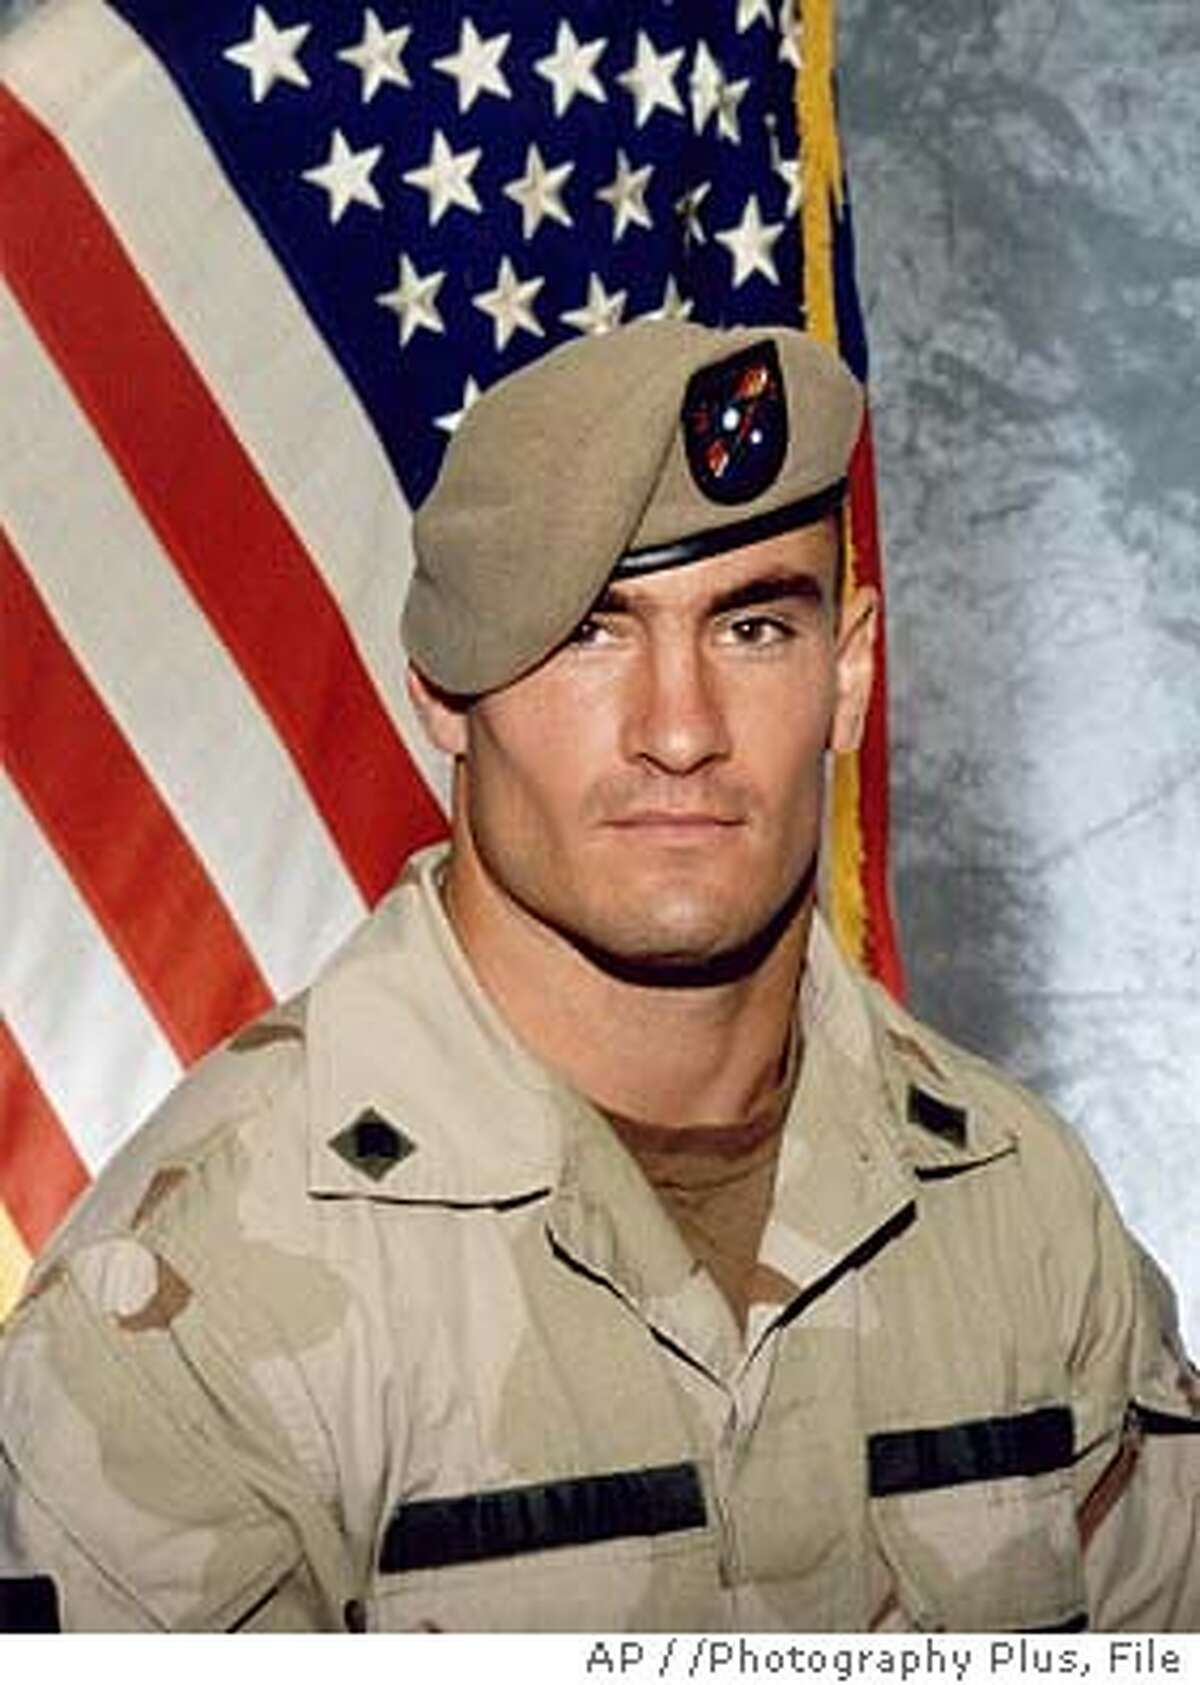 ** FILE ** Former Arizona Cardinals football player Pat Tillman, is shown in a June 2003 photo, released by Photography Plus. The New York Giants will face the Arizona Cardinals, Tillman's former team, when the NFL opens the 2005 season on Sept. 11, the first time pro football games have been played on that date since before the attacks. Tillman gave up a lucrative contract after the Sept. 11, 2001 terror attacks to join the Army with his brother, only to be killed in Afghanistan last year. (AP Photo/Photography Plus via Williamson Stealth Media Solutions) Ran on: 09-25-2005 Pat Tillman, who gave up a career in the NFL that would have made him a millionaire so he could instead fight terrorism as an Army Ranger, died from friendly fire in Afghanistan. Ran on: 09-25-2005 Pat Tillman, who gave up a career in the NFL that would have made him a millionaire so he could instead fight terrorism as an Army Ranger, died from friendly fire in Afghanistan.